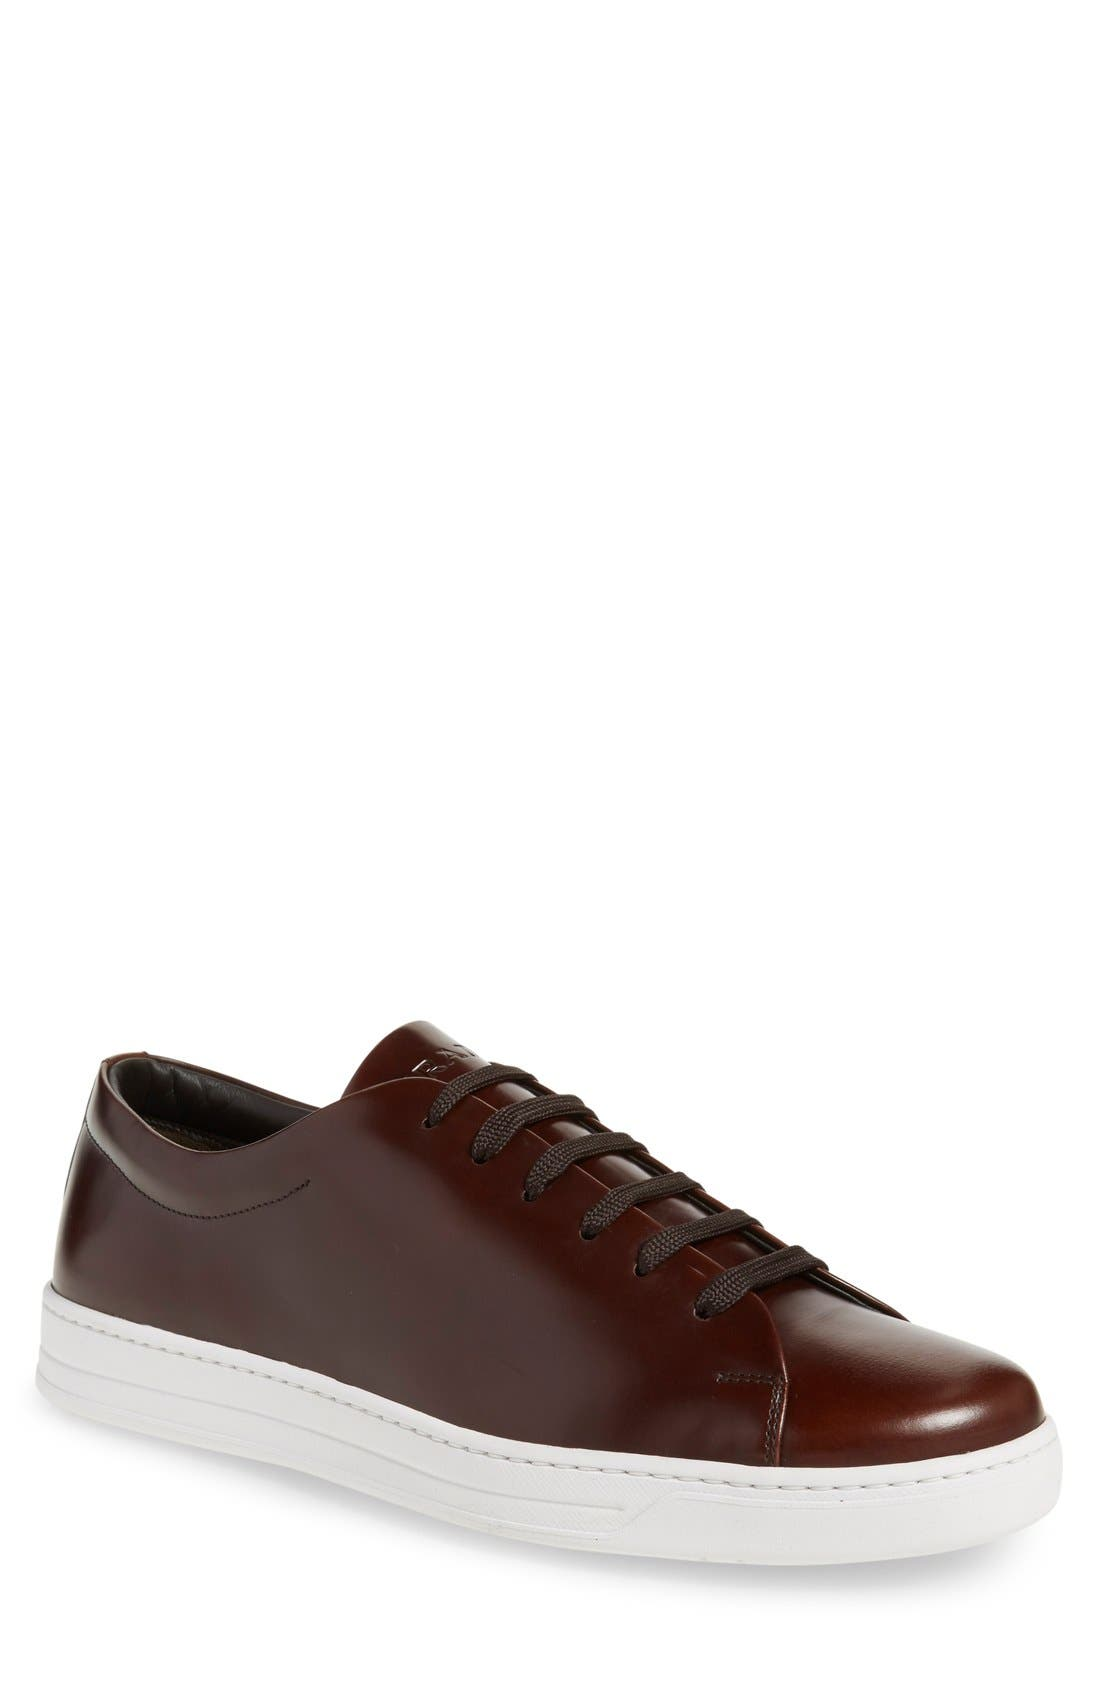 Low Top Sneaker,                         Main,                         color, Bruciato Leather